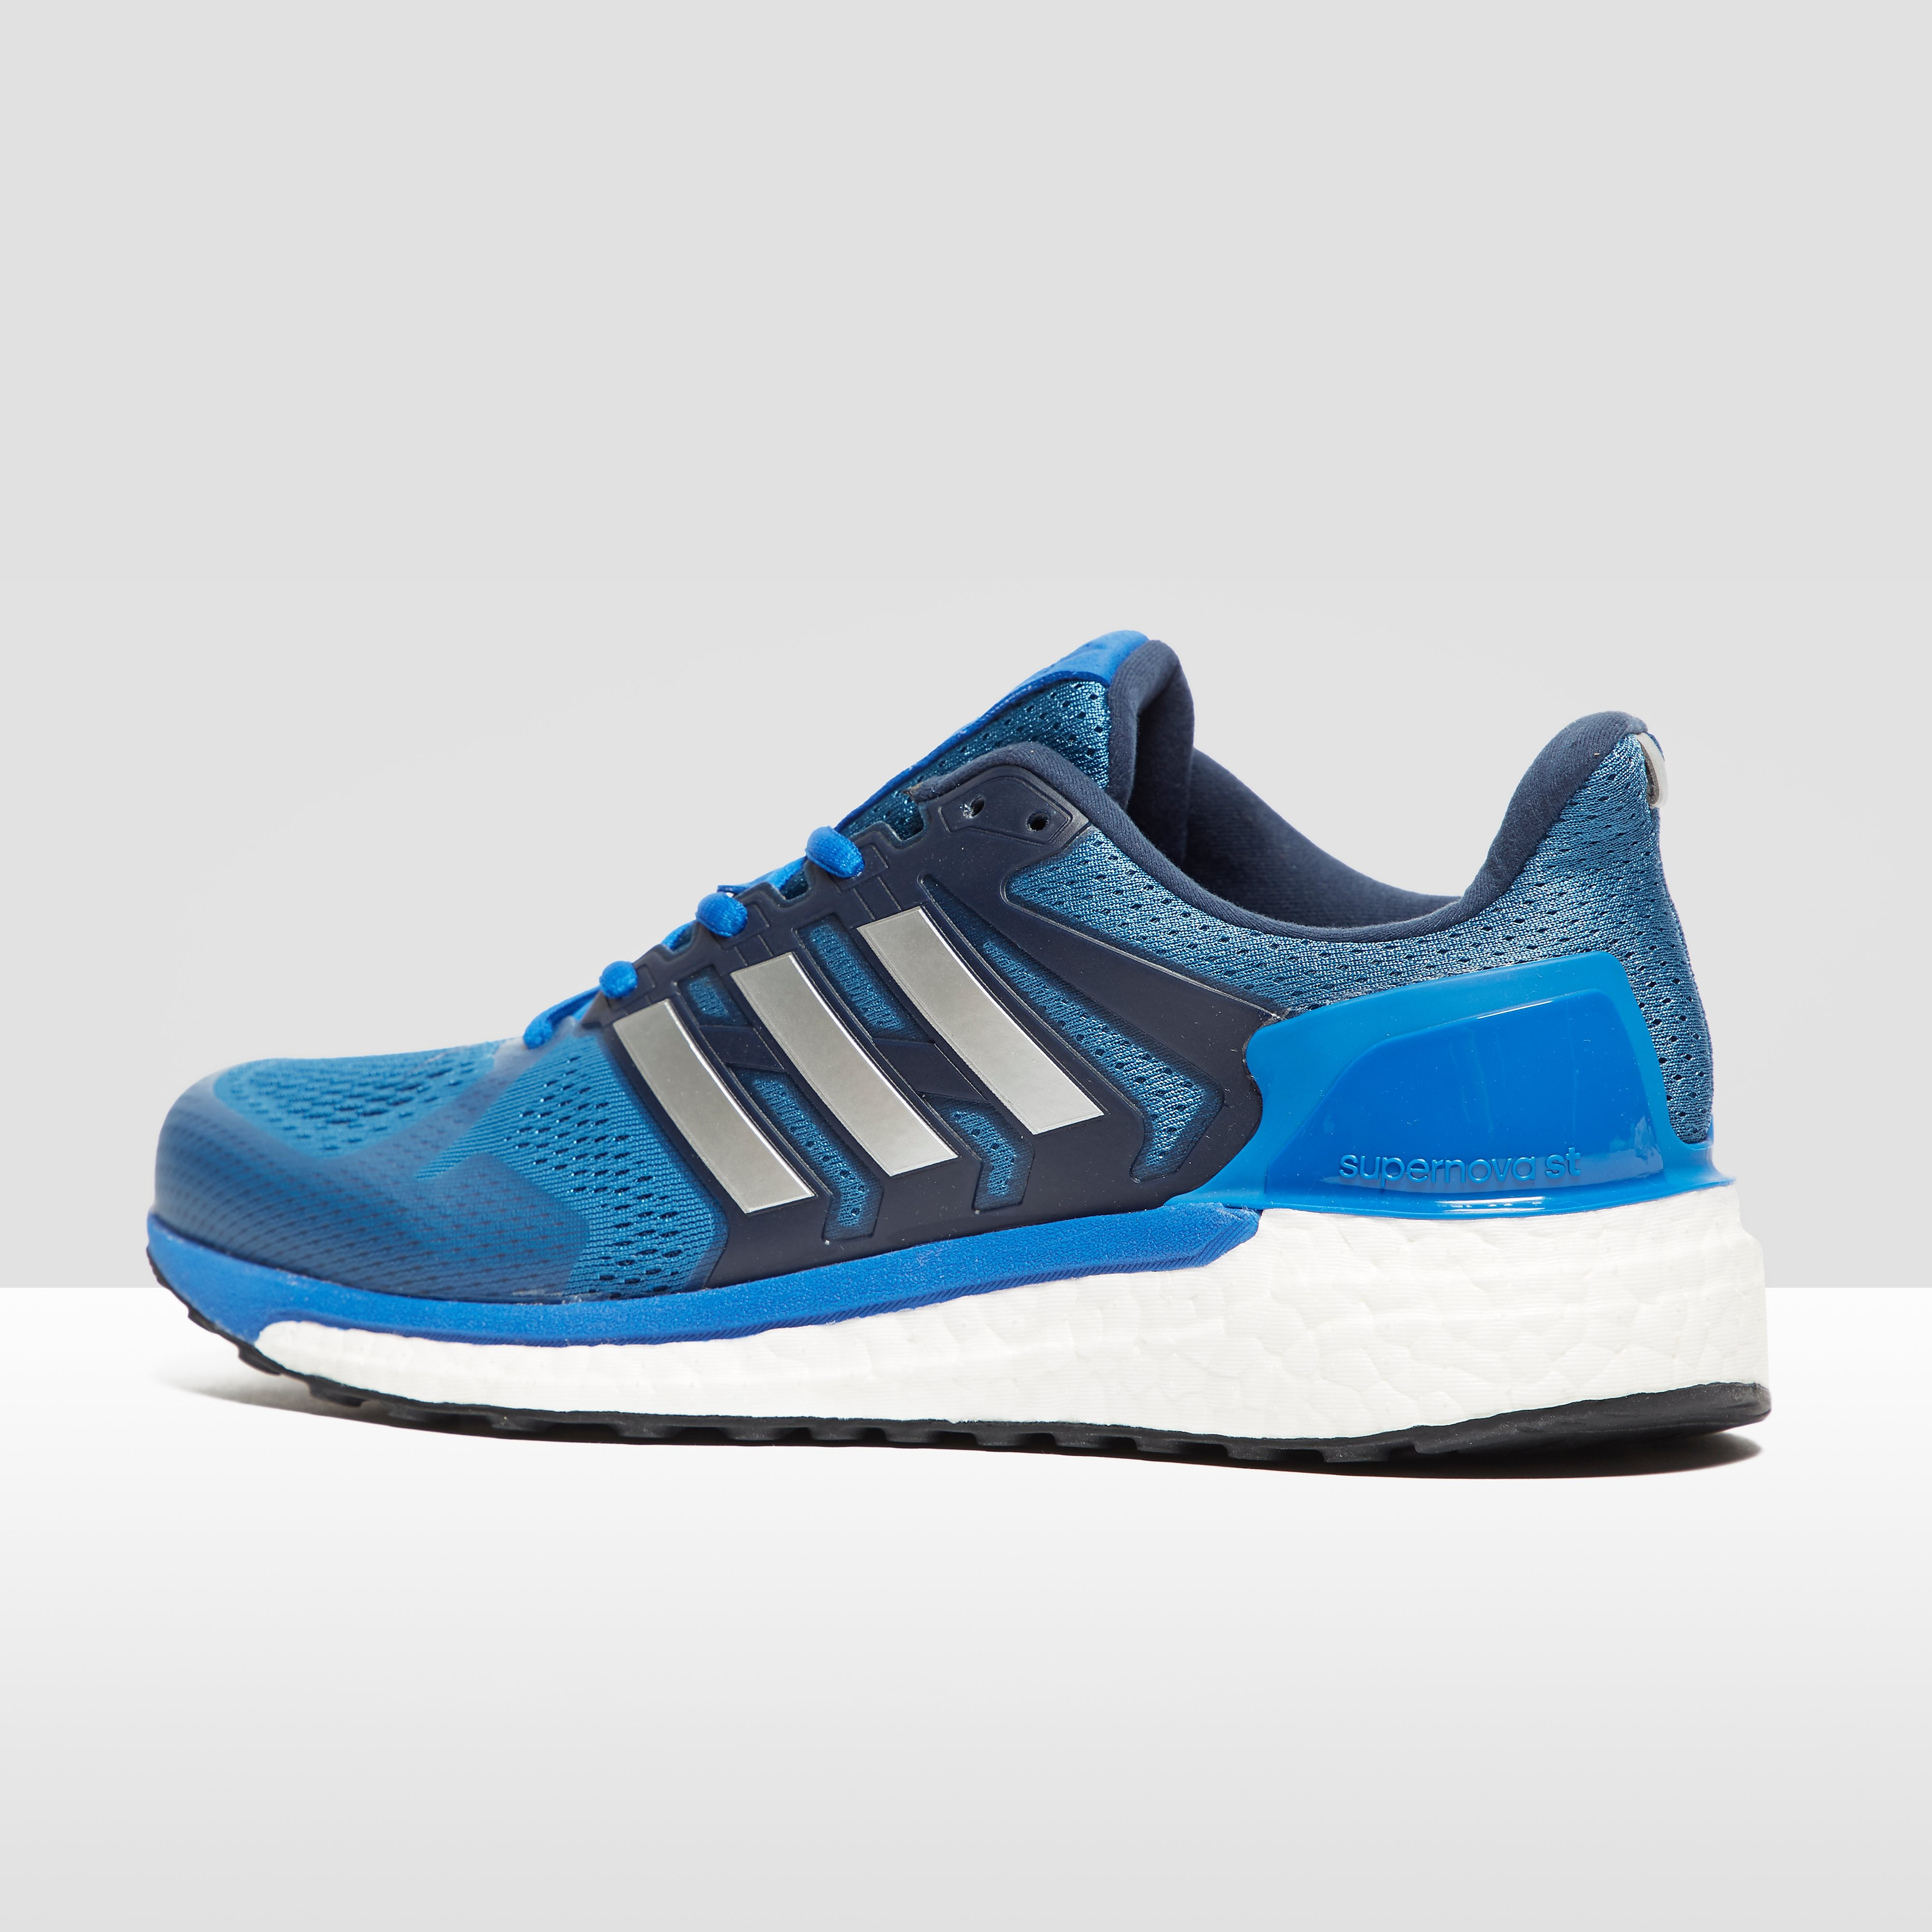 adidas Supernova ST Men's Running Shoes